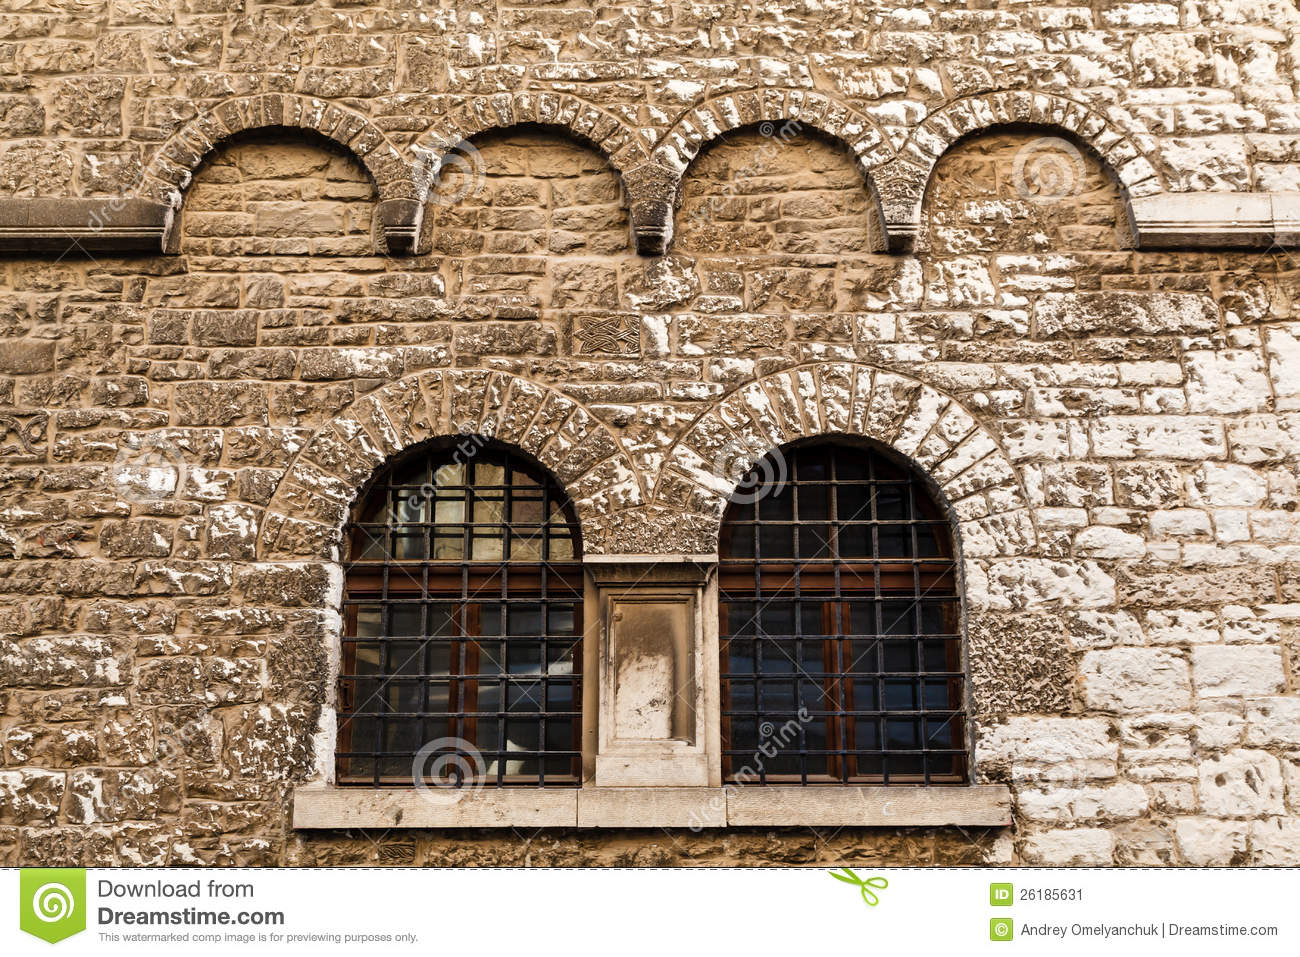 Arched windows in ancient house in pula stock image - Houses with arched windows ...